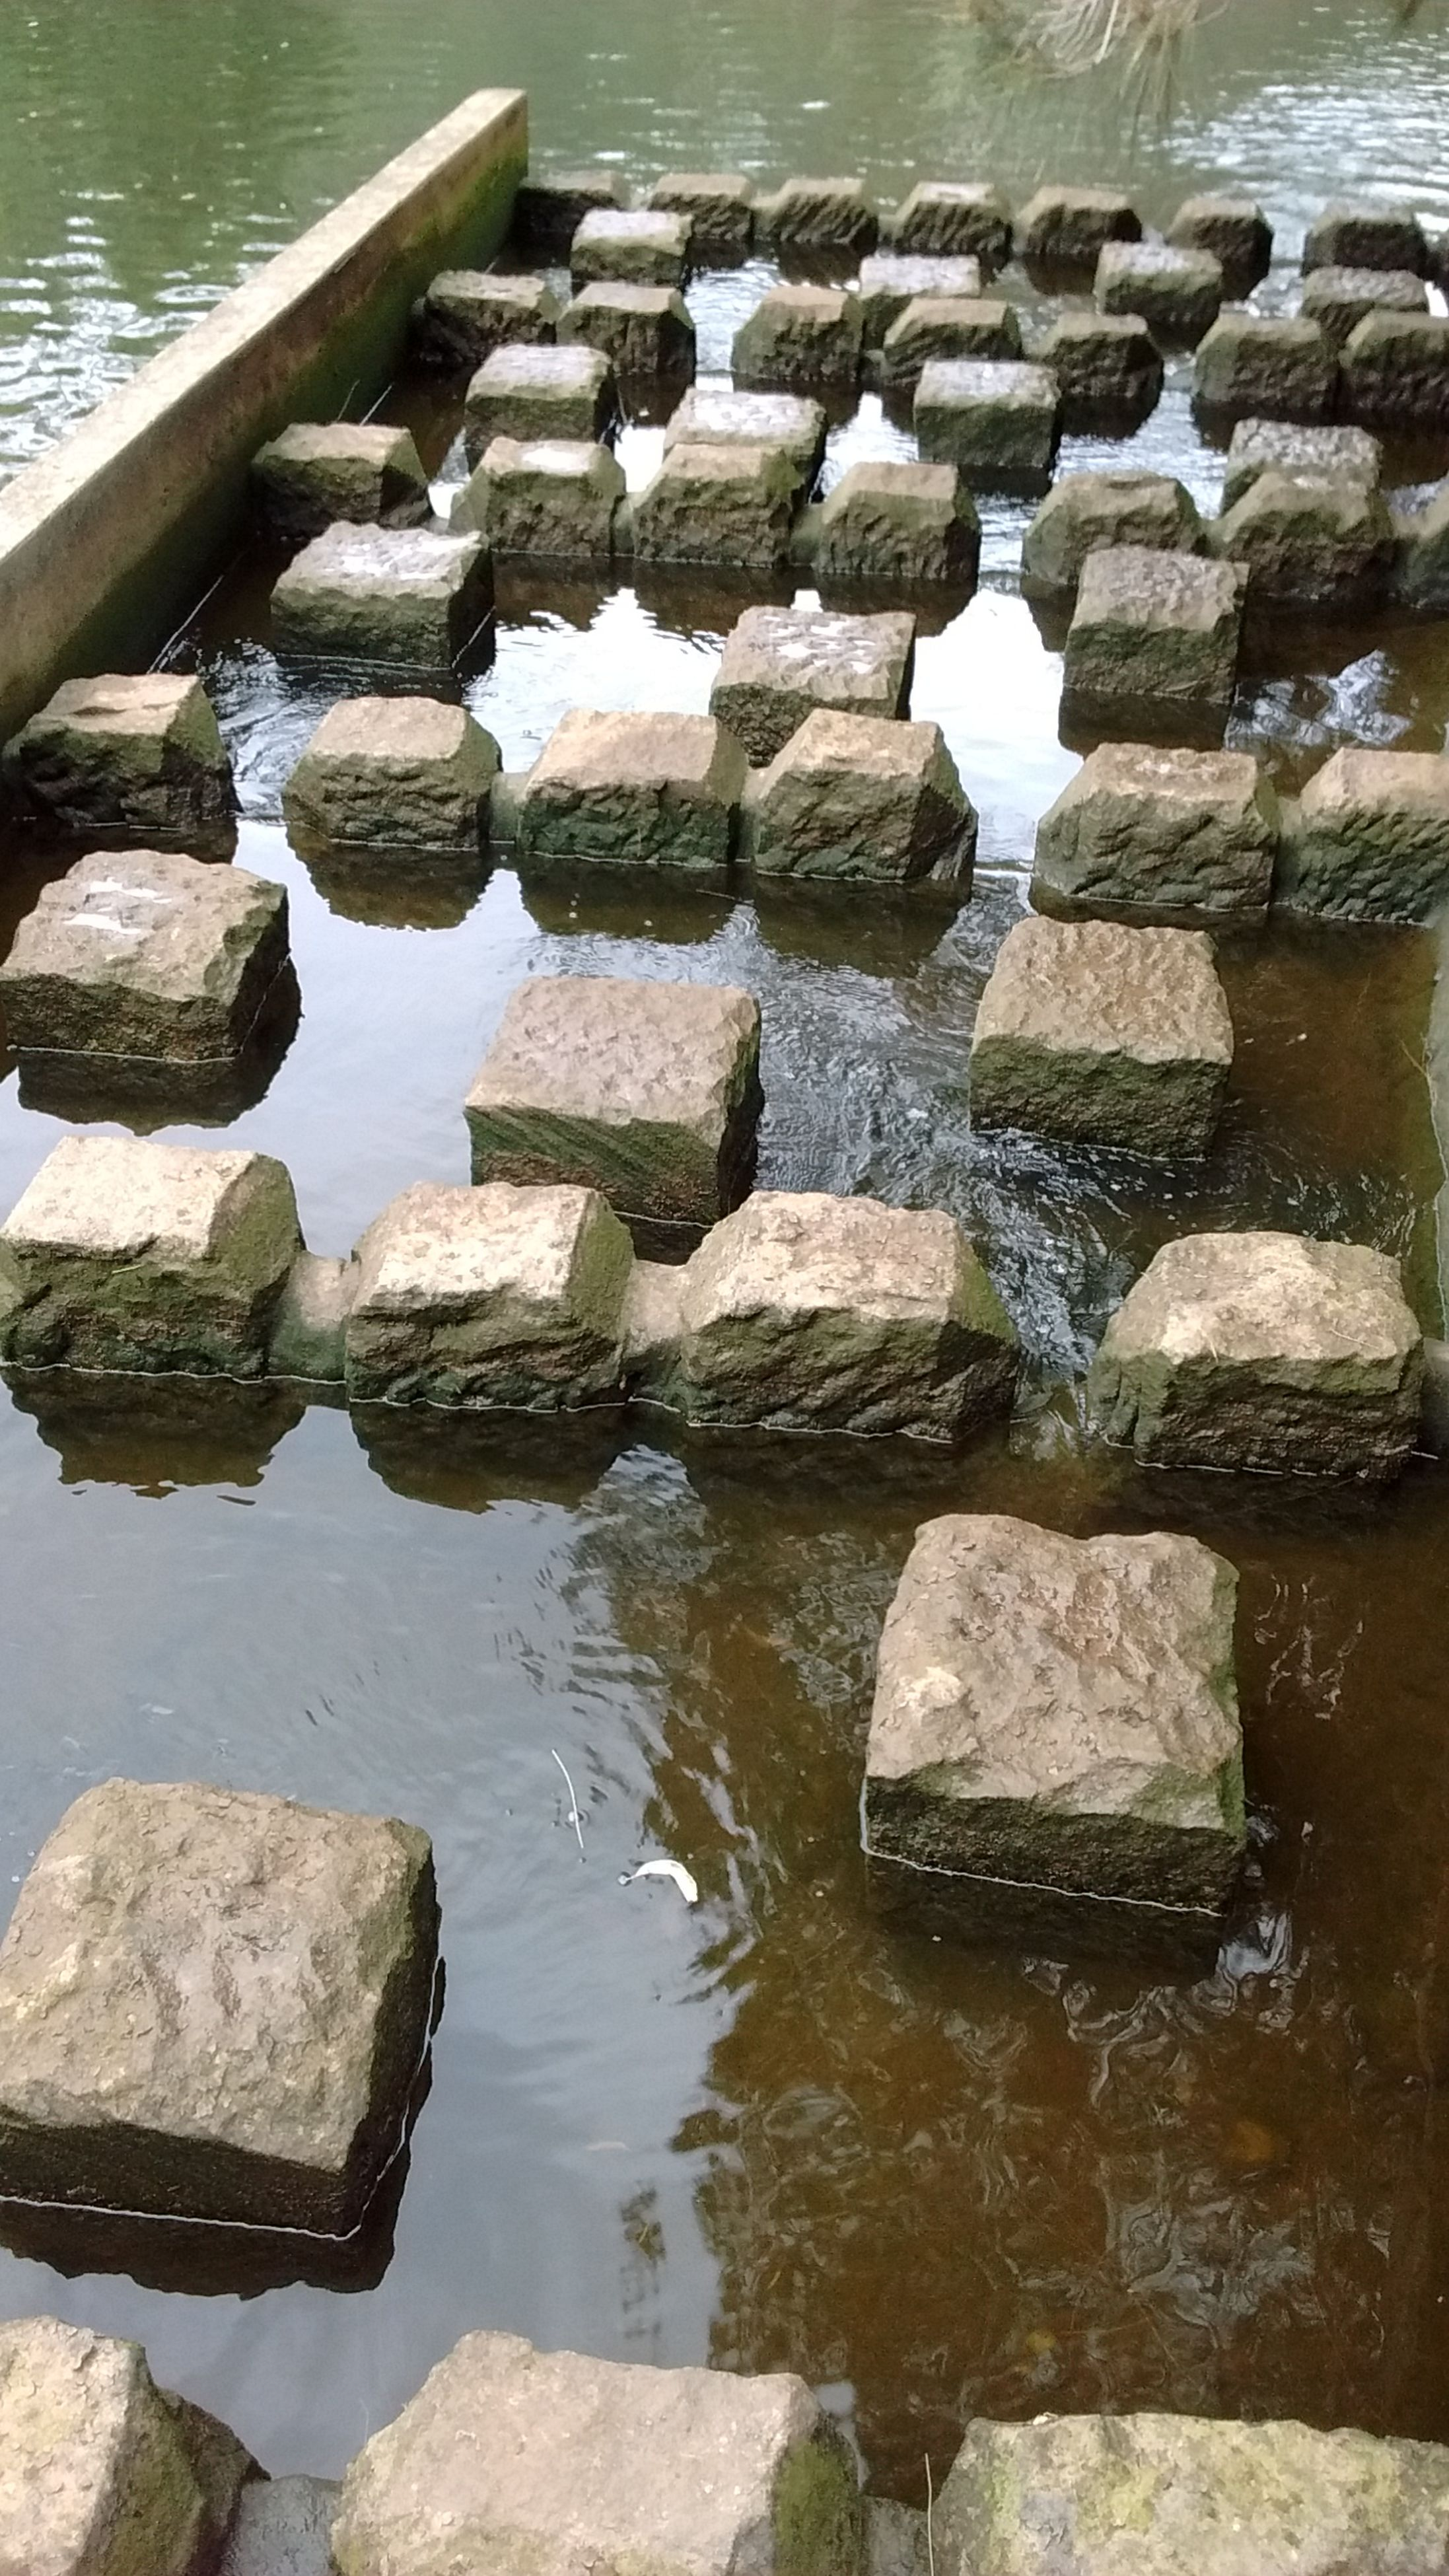 water, reflection, nature, stepping stone, day, outdoors, no people, beauty in nature